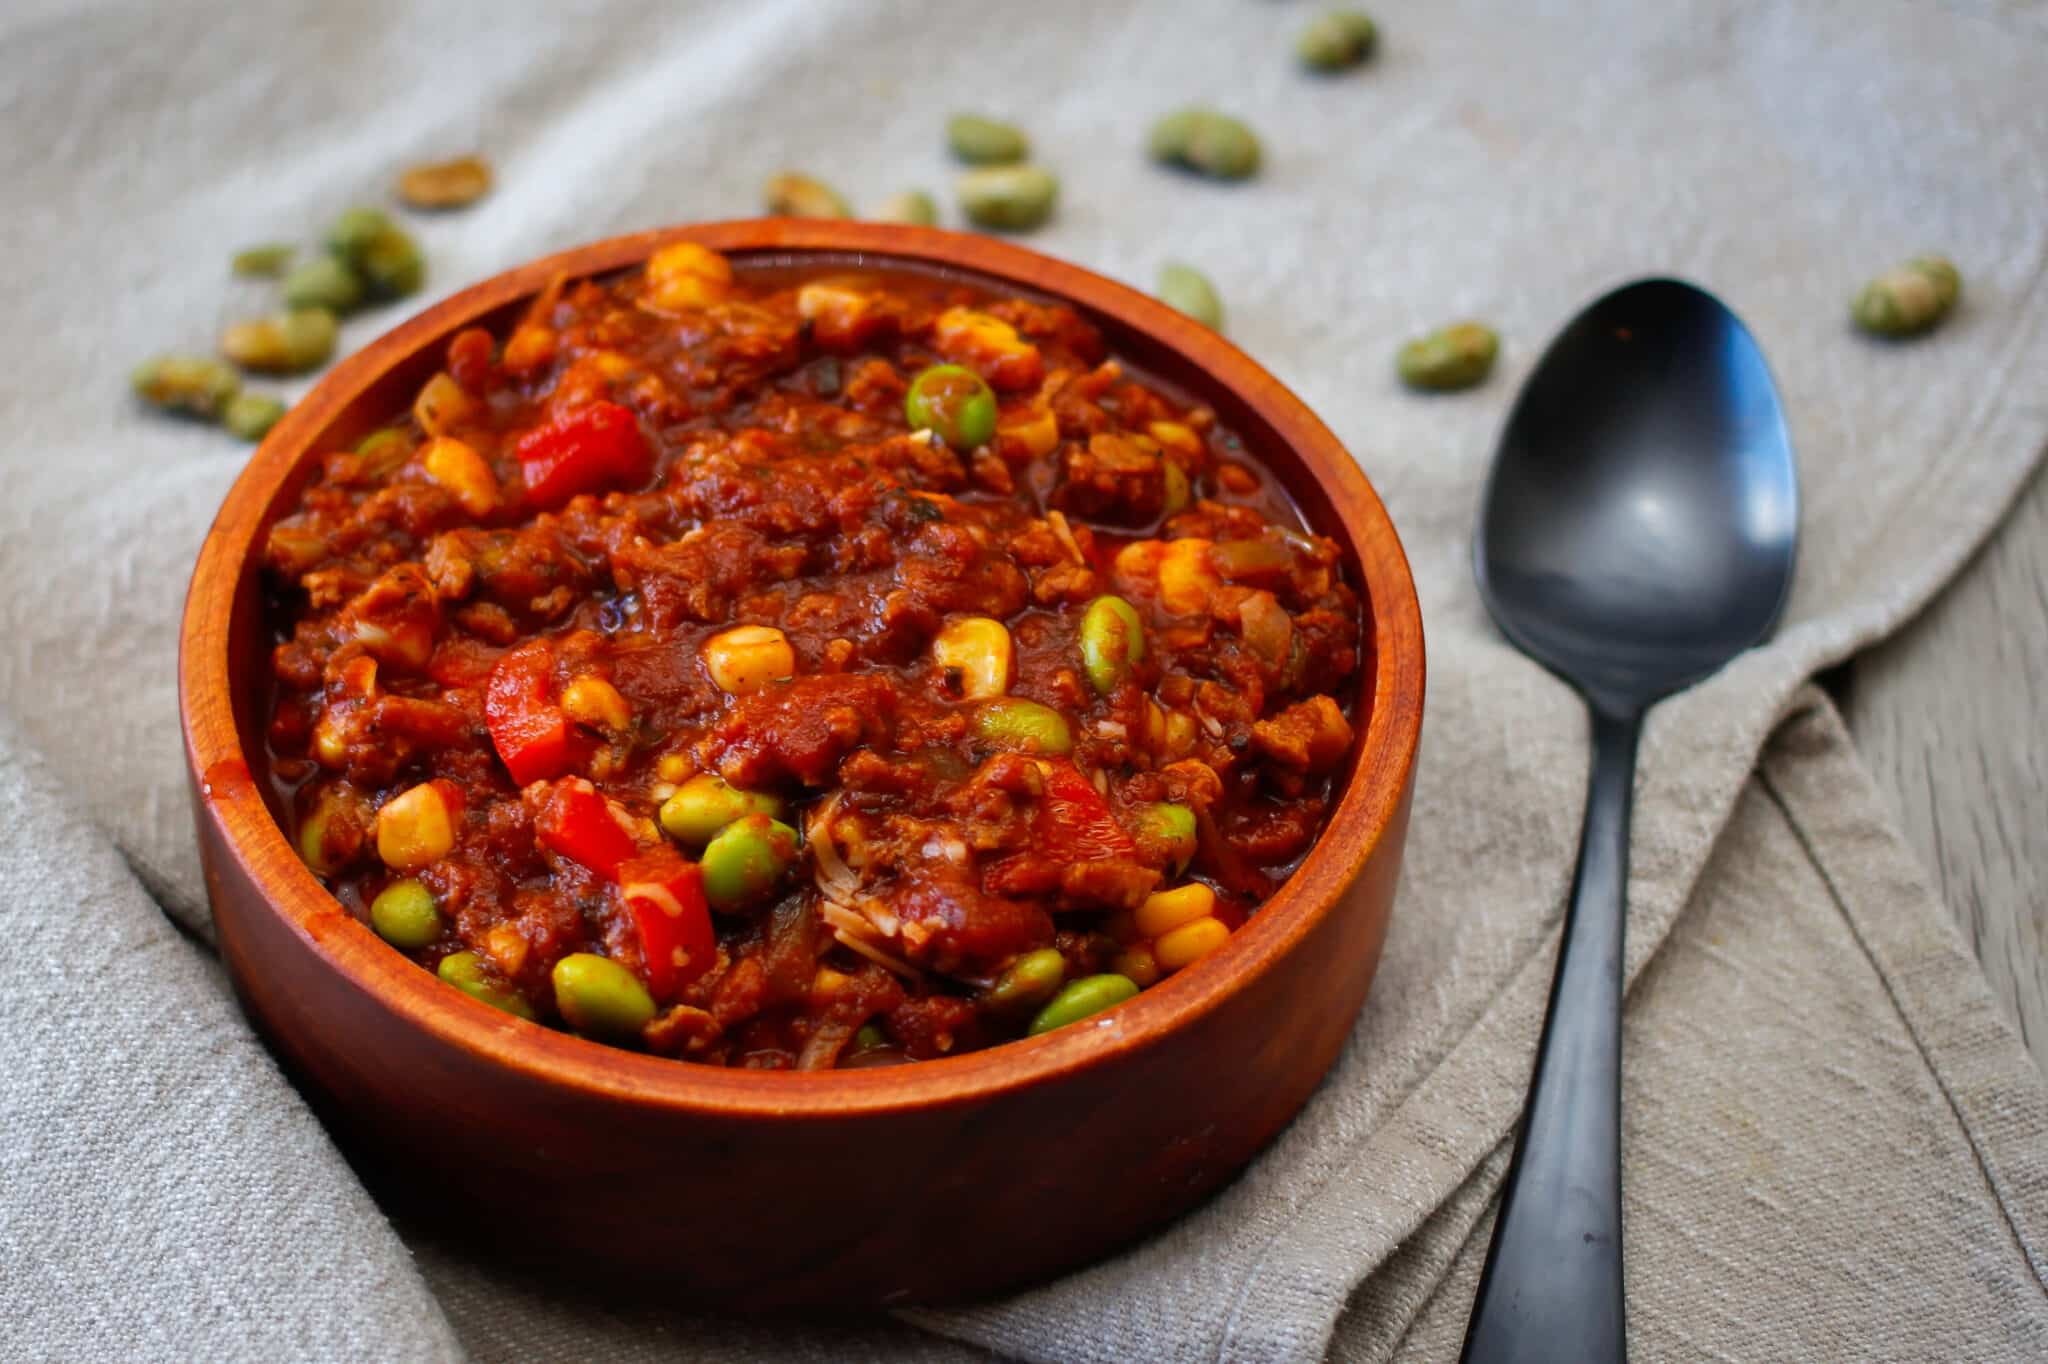 vegetarian chili with corn and soy beans in an orange bowl